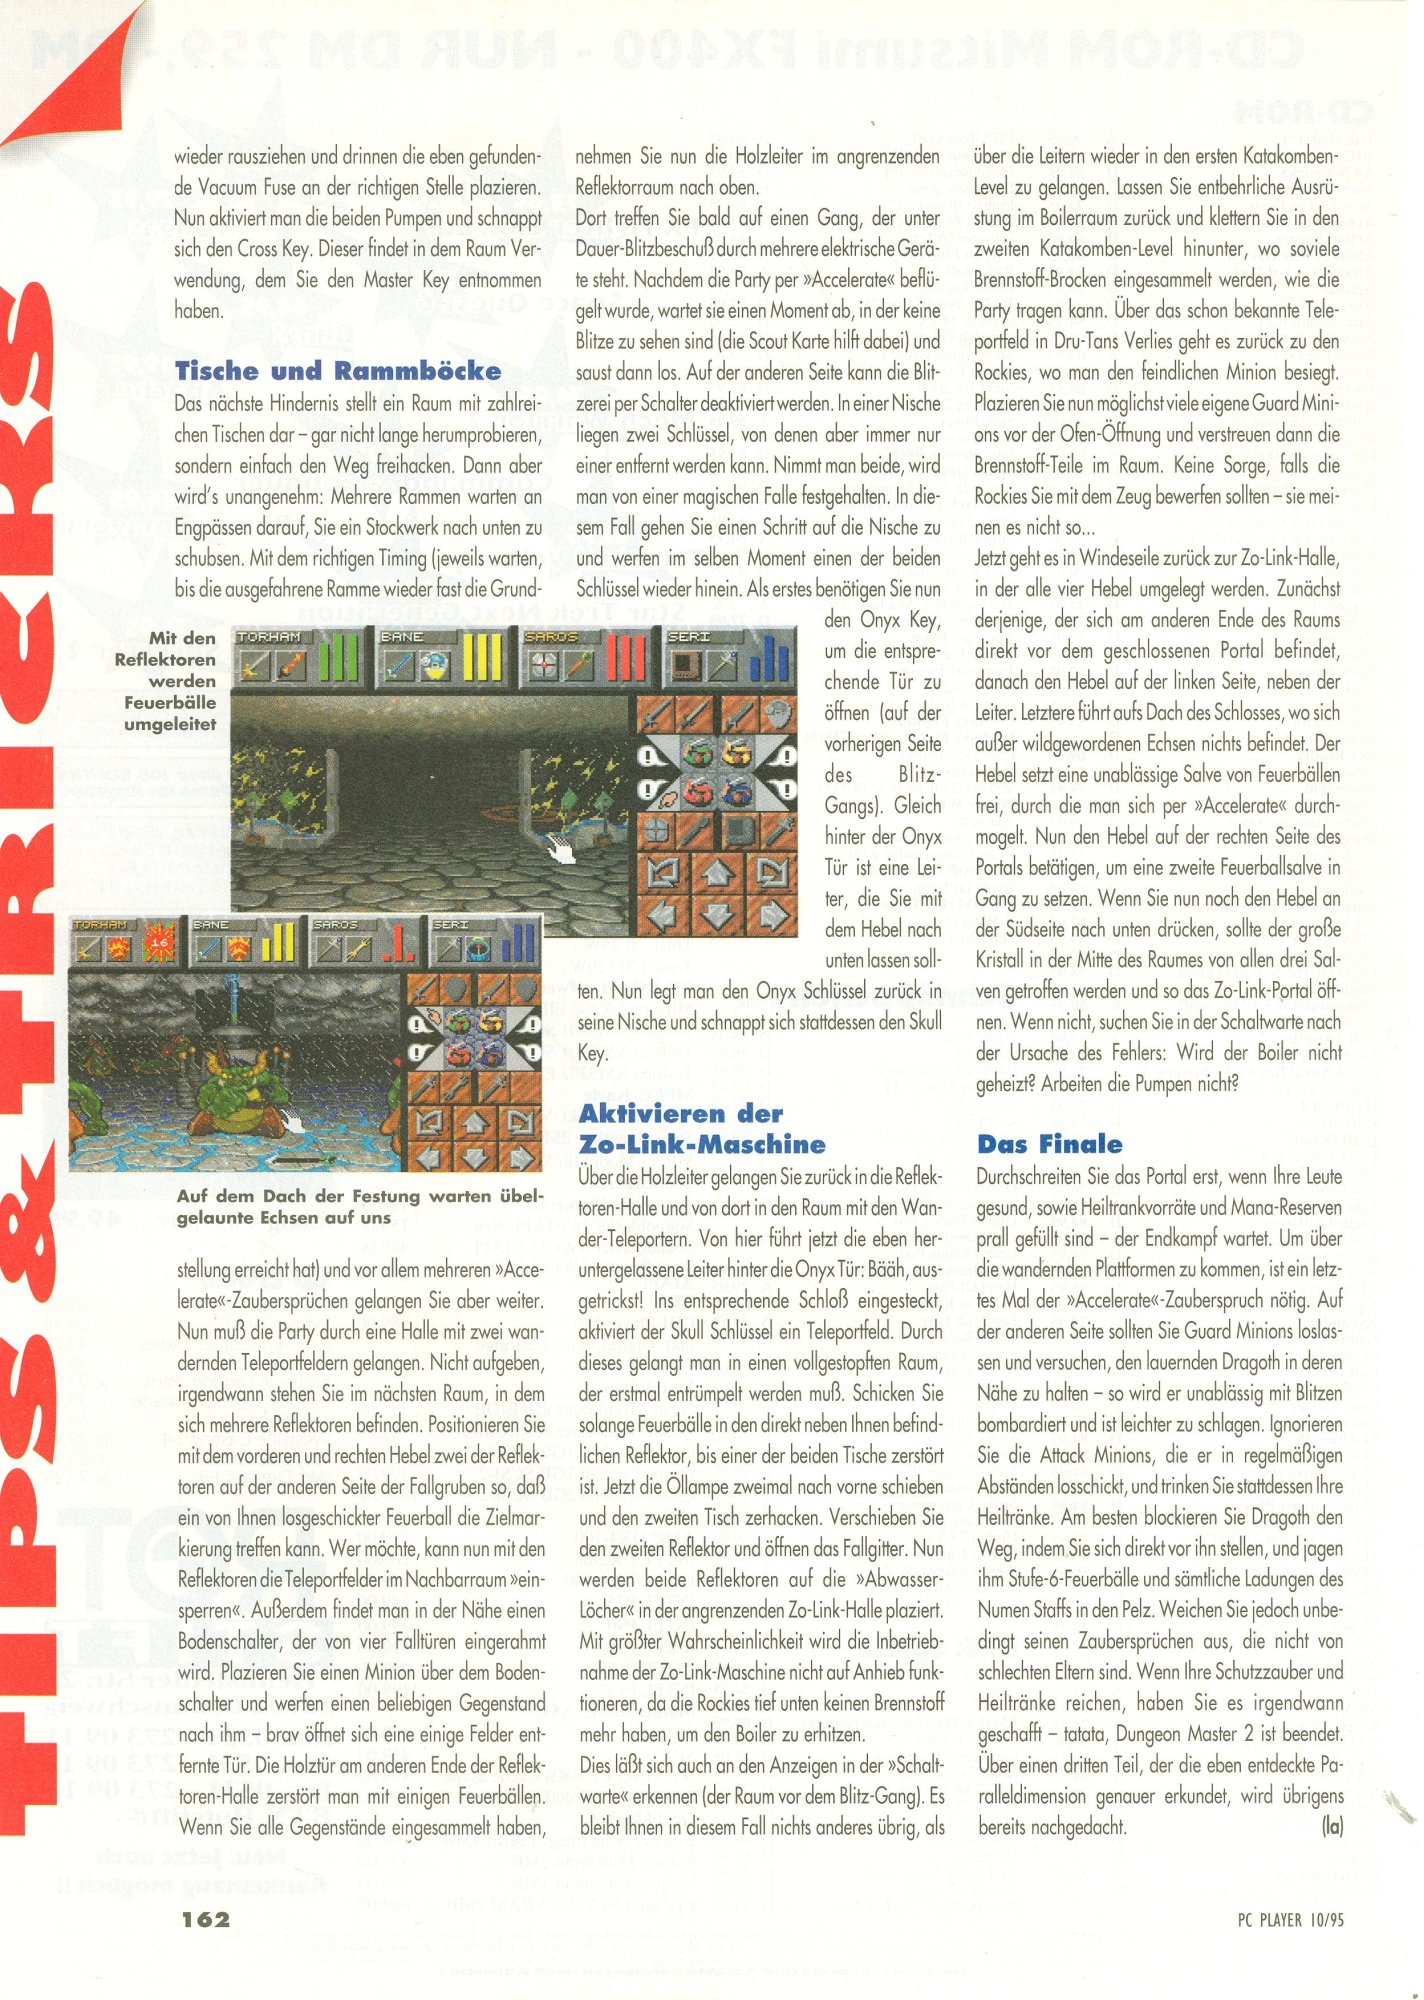 Dungeon Master II for PC Guide published in German magazine 'PC Player', October 1995, Page 162